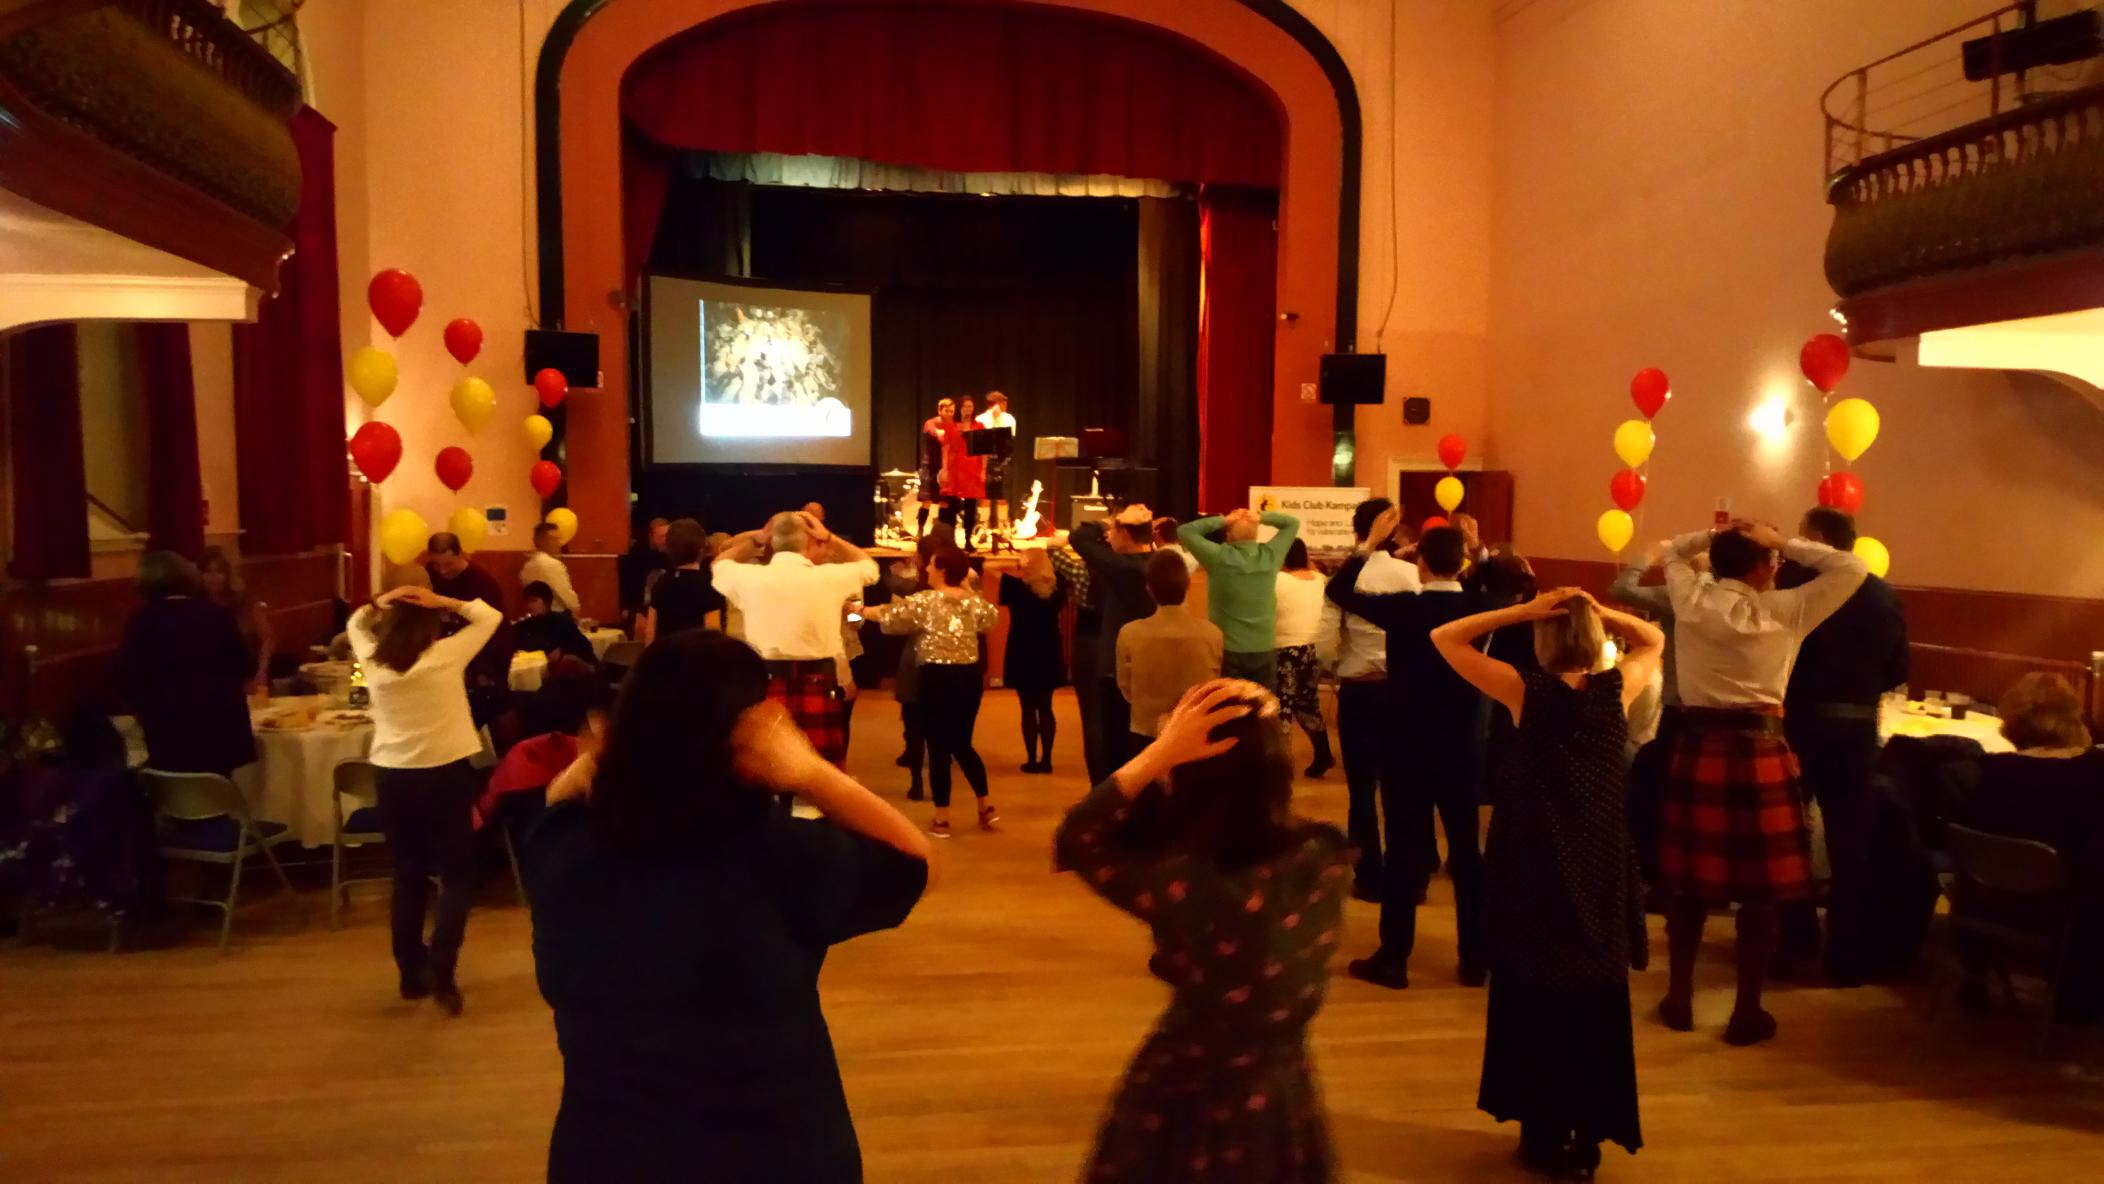 Jess_Stonehaven_Ceilidh_Photo7_16-03-2019.JPG